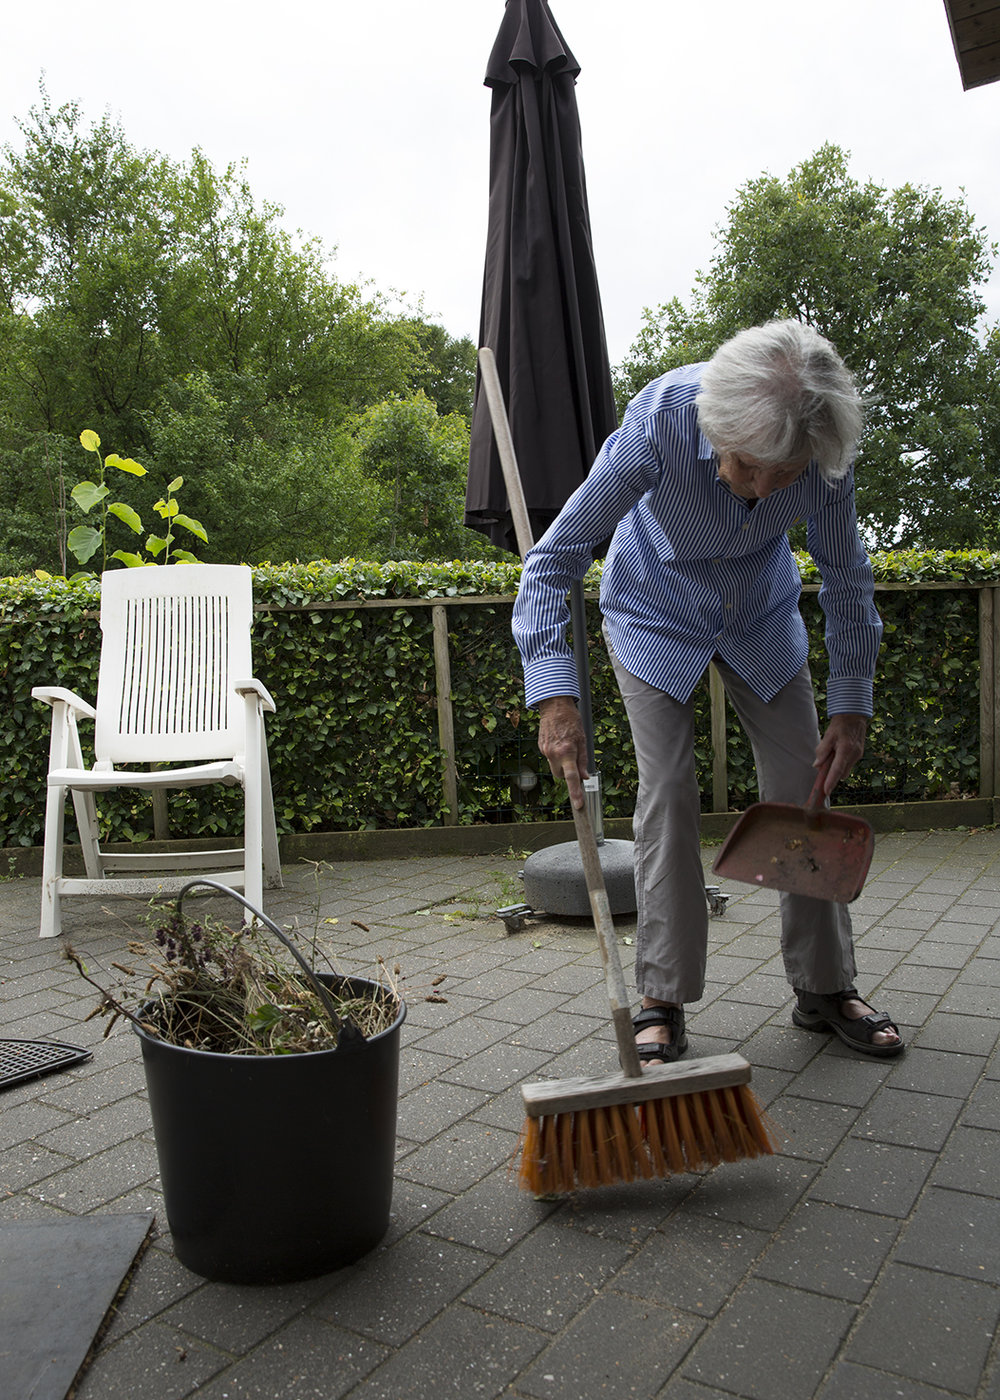 JessicaTanGudnason_Independent Woman_Weeding the Garden.jpg